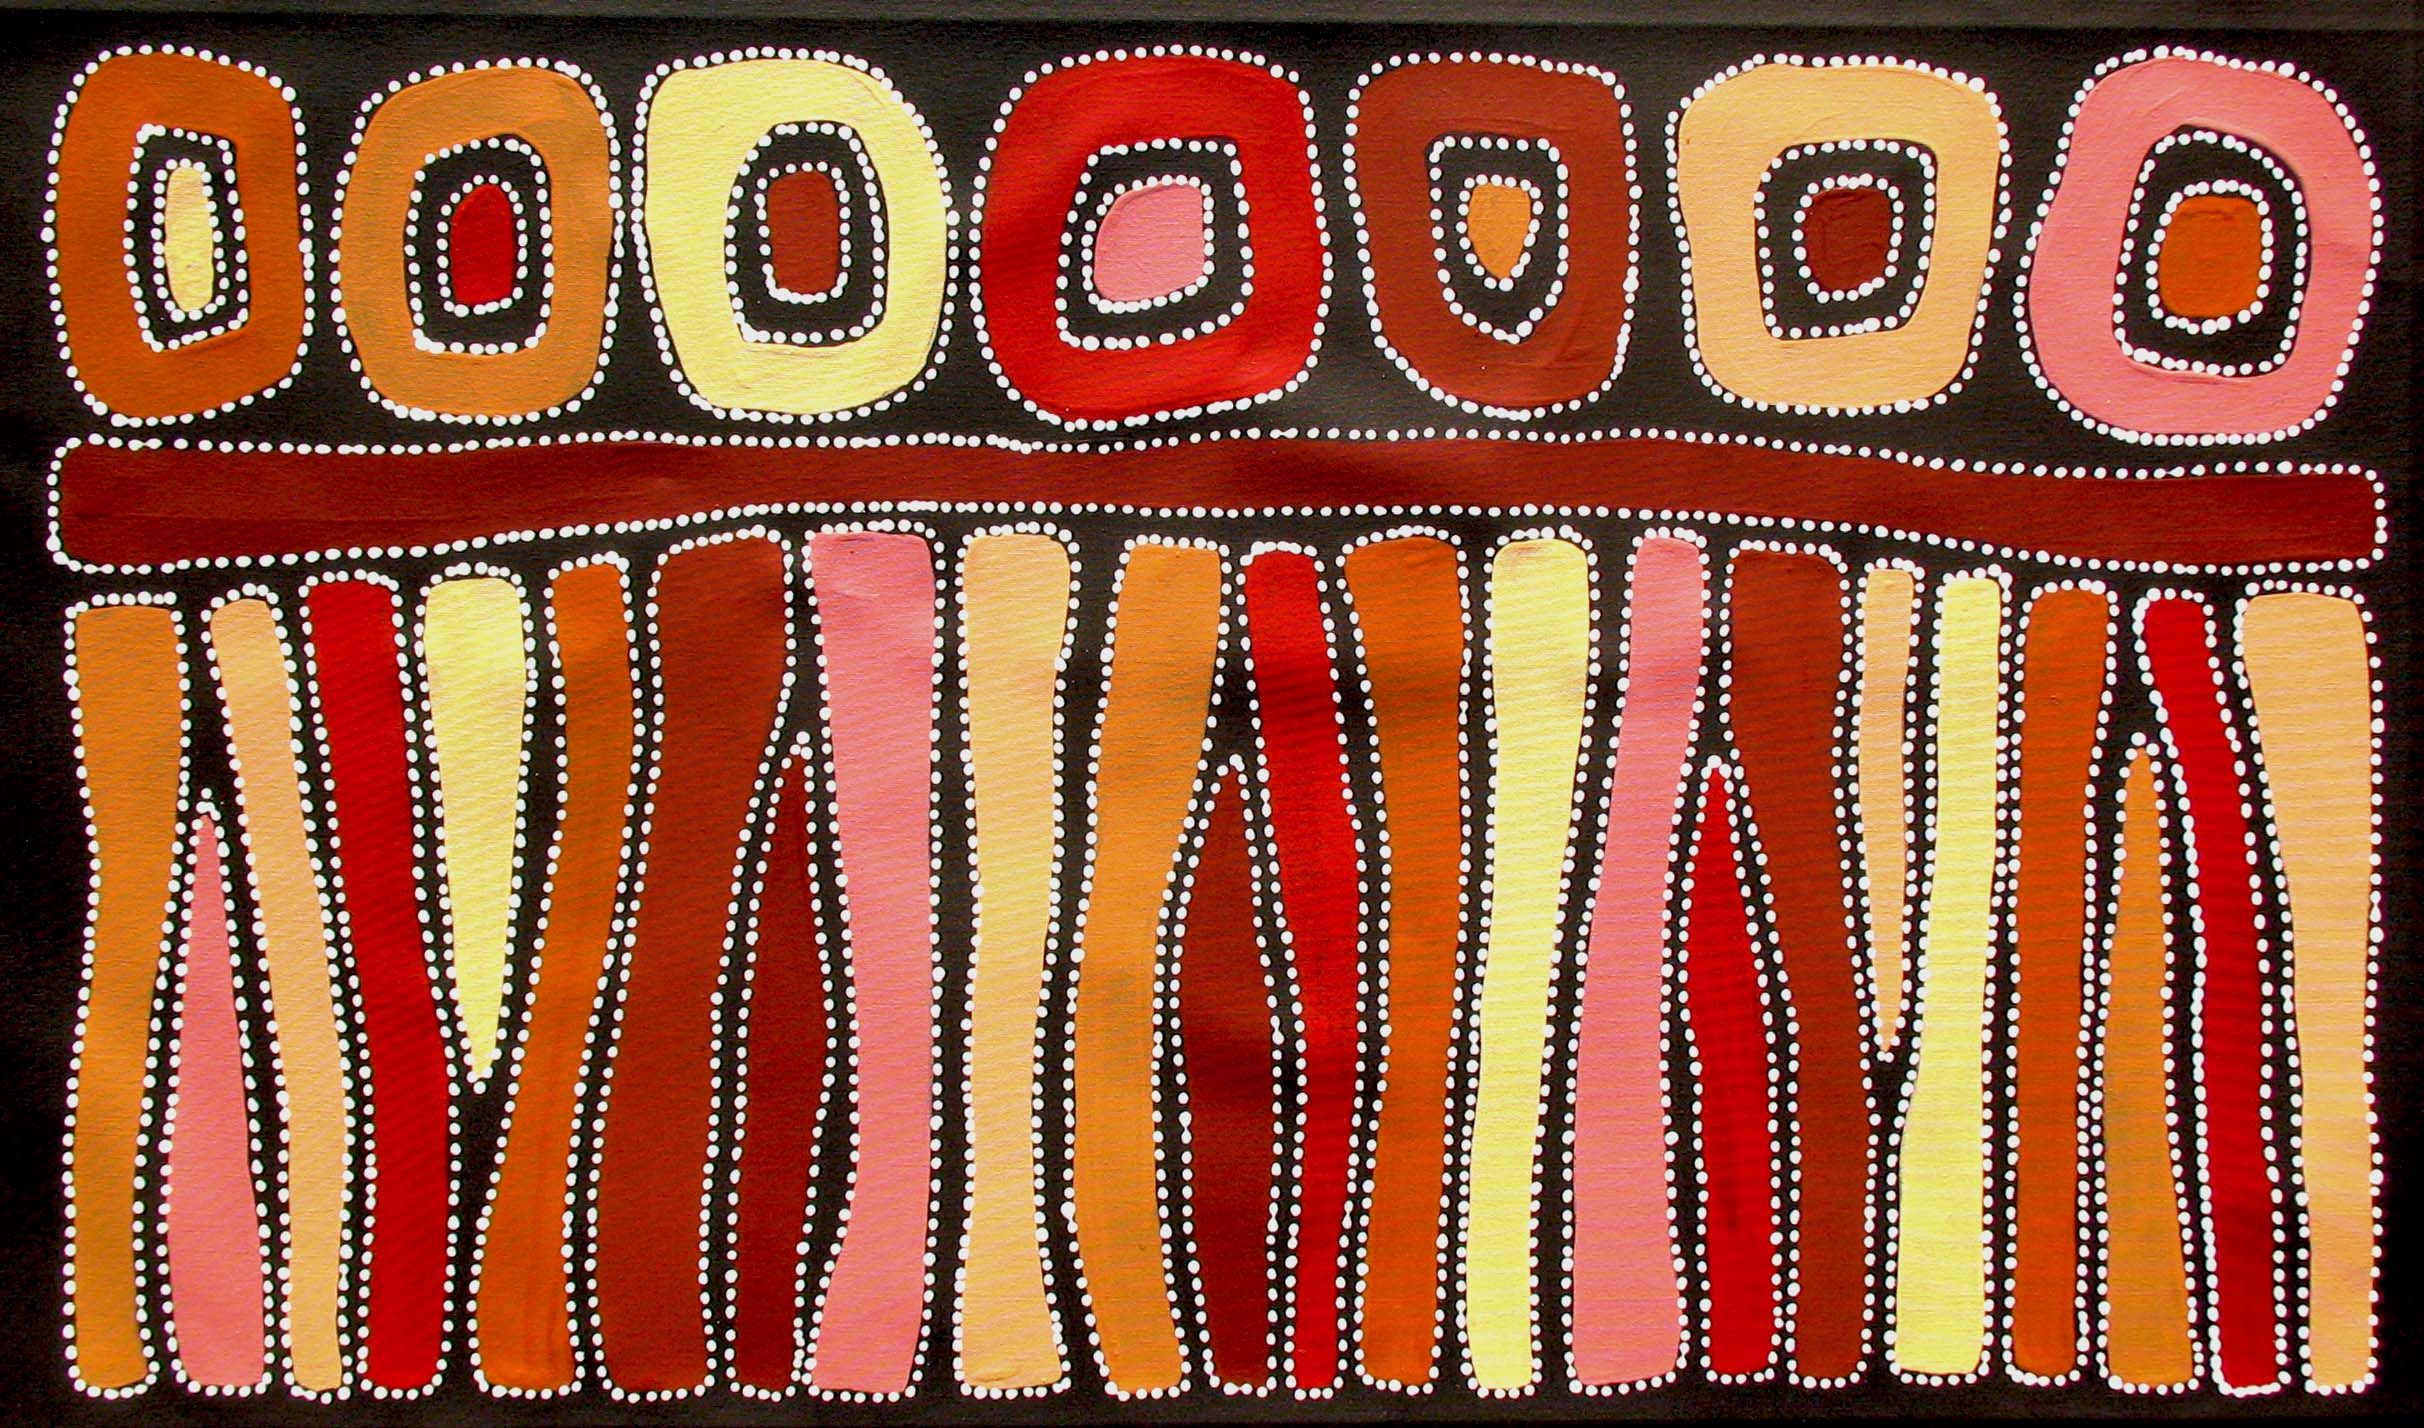 Aboriginal Artwork by Sally Clark. Sold through Coolabah Art on eBay. Cataogue ID 13545